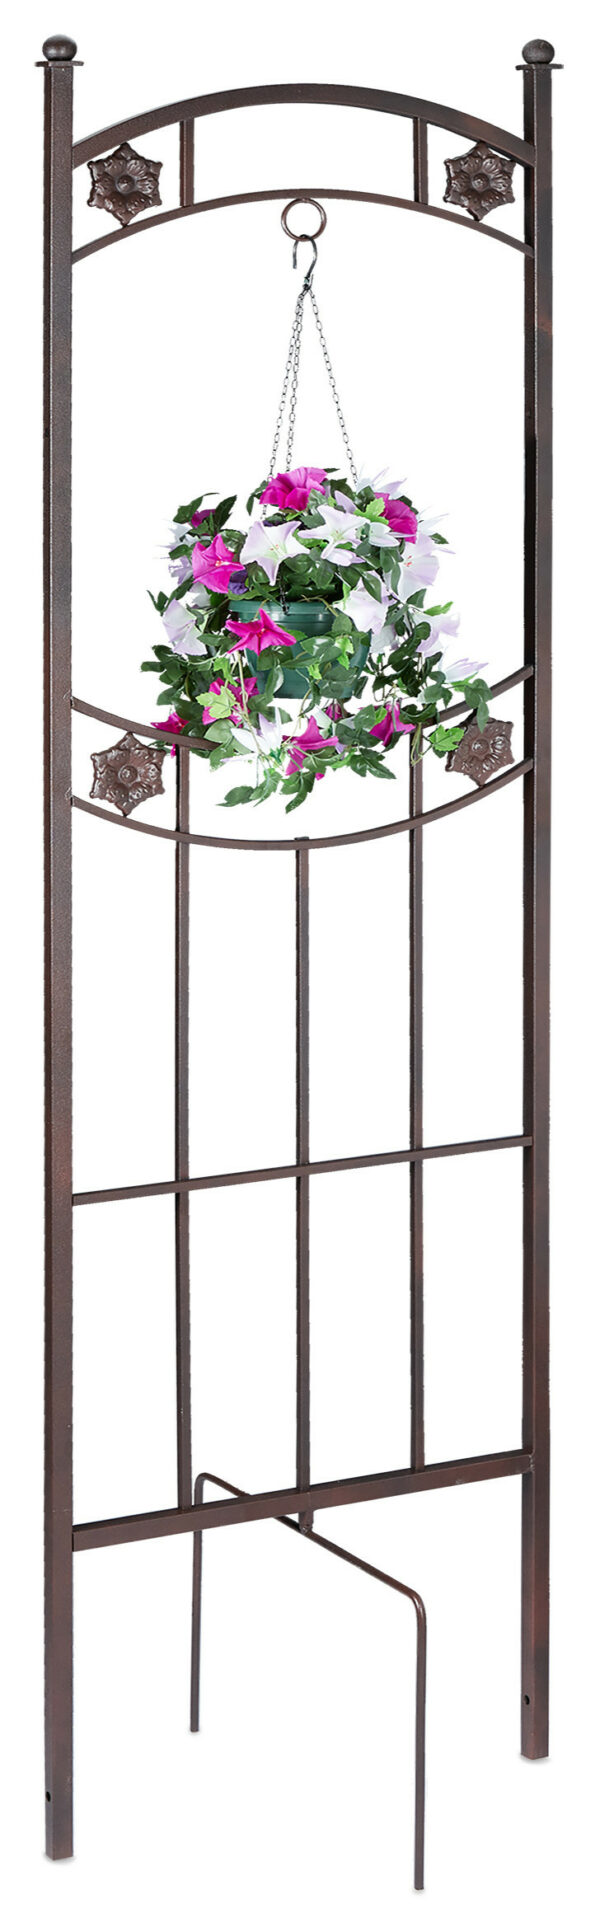 Relaxdays garden trellis, with ring hanging feature, climbing frame, growth support, 52 x 43.5 x 182 cm (LxWxH), brown